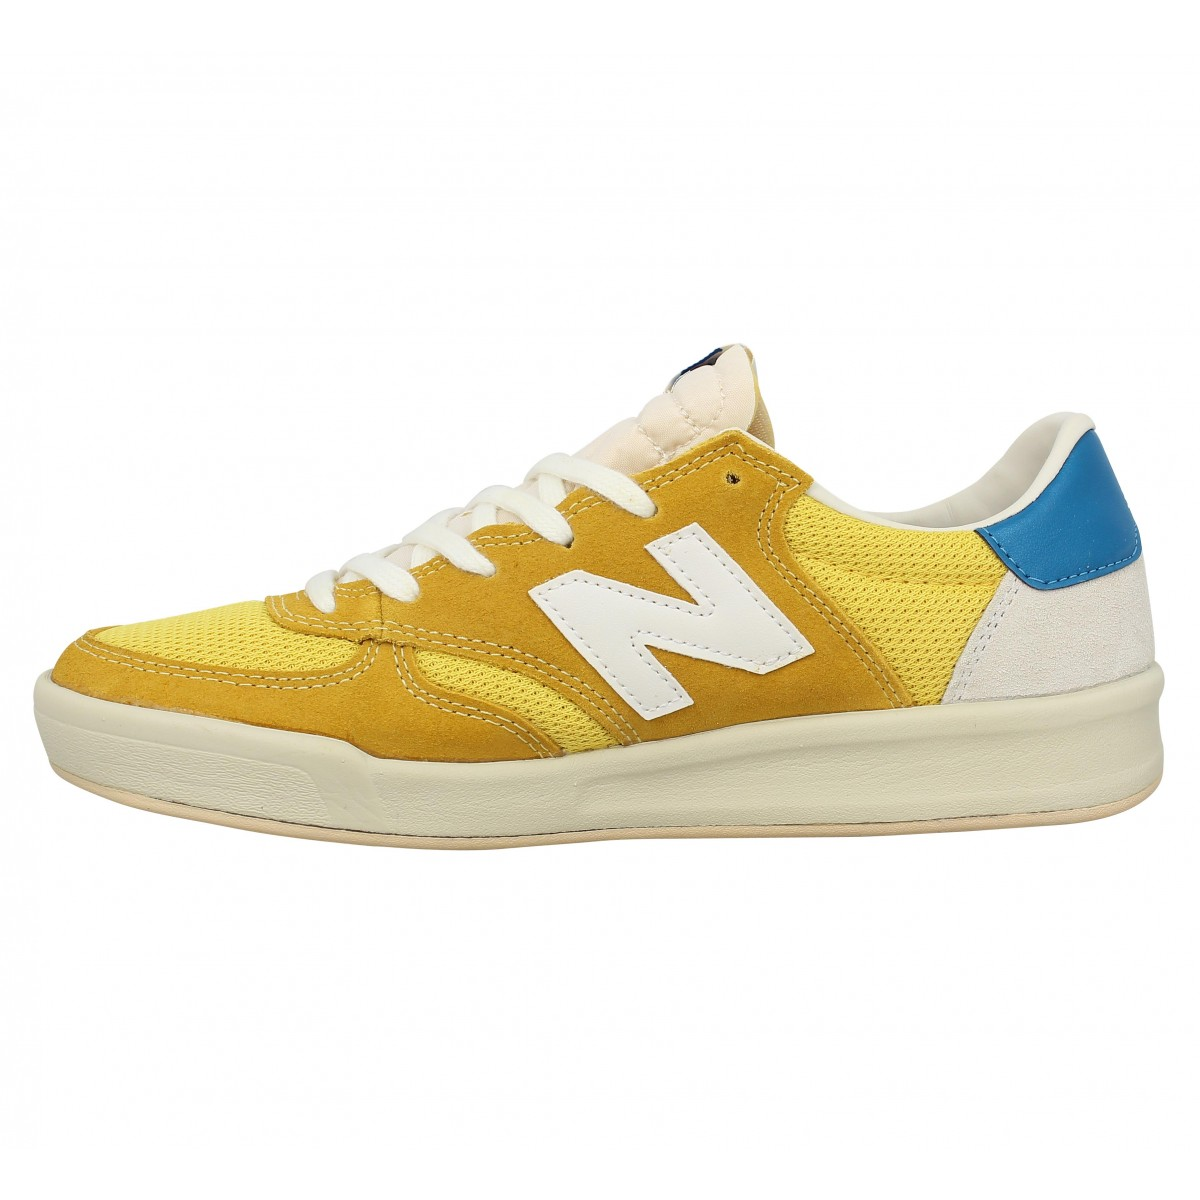 New balance crt300 jaune homme | Fanny chaussures